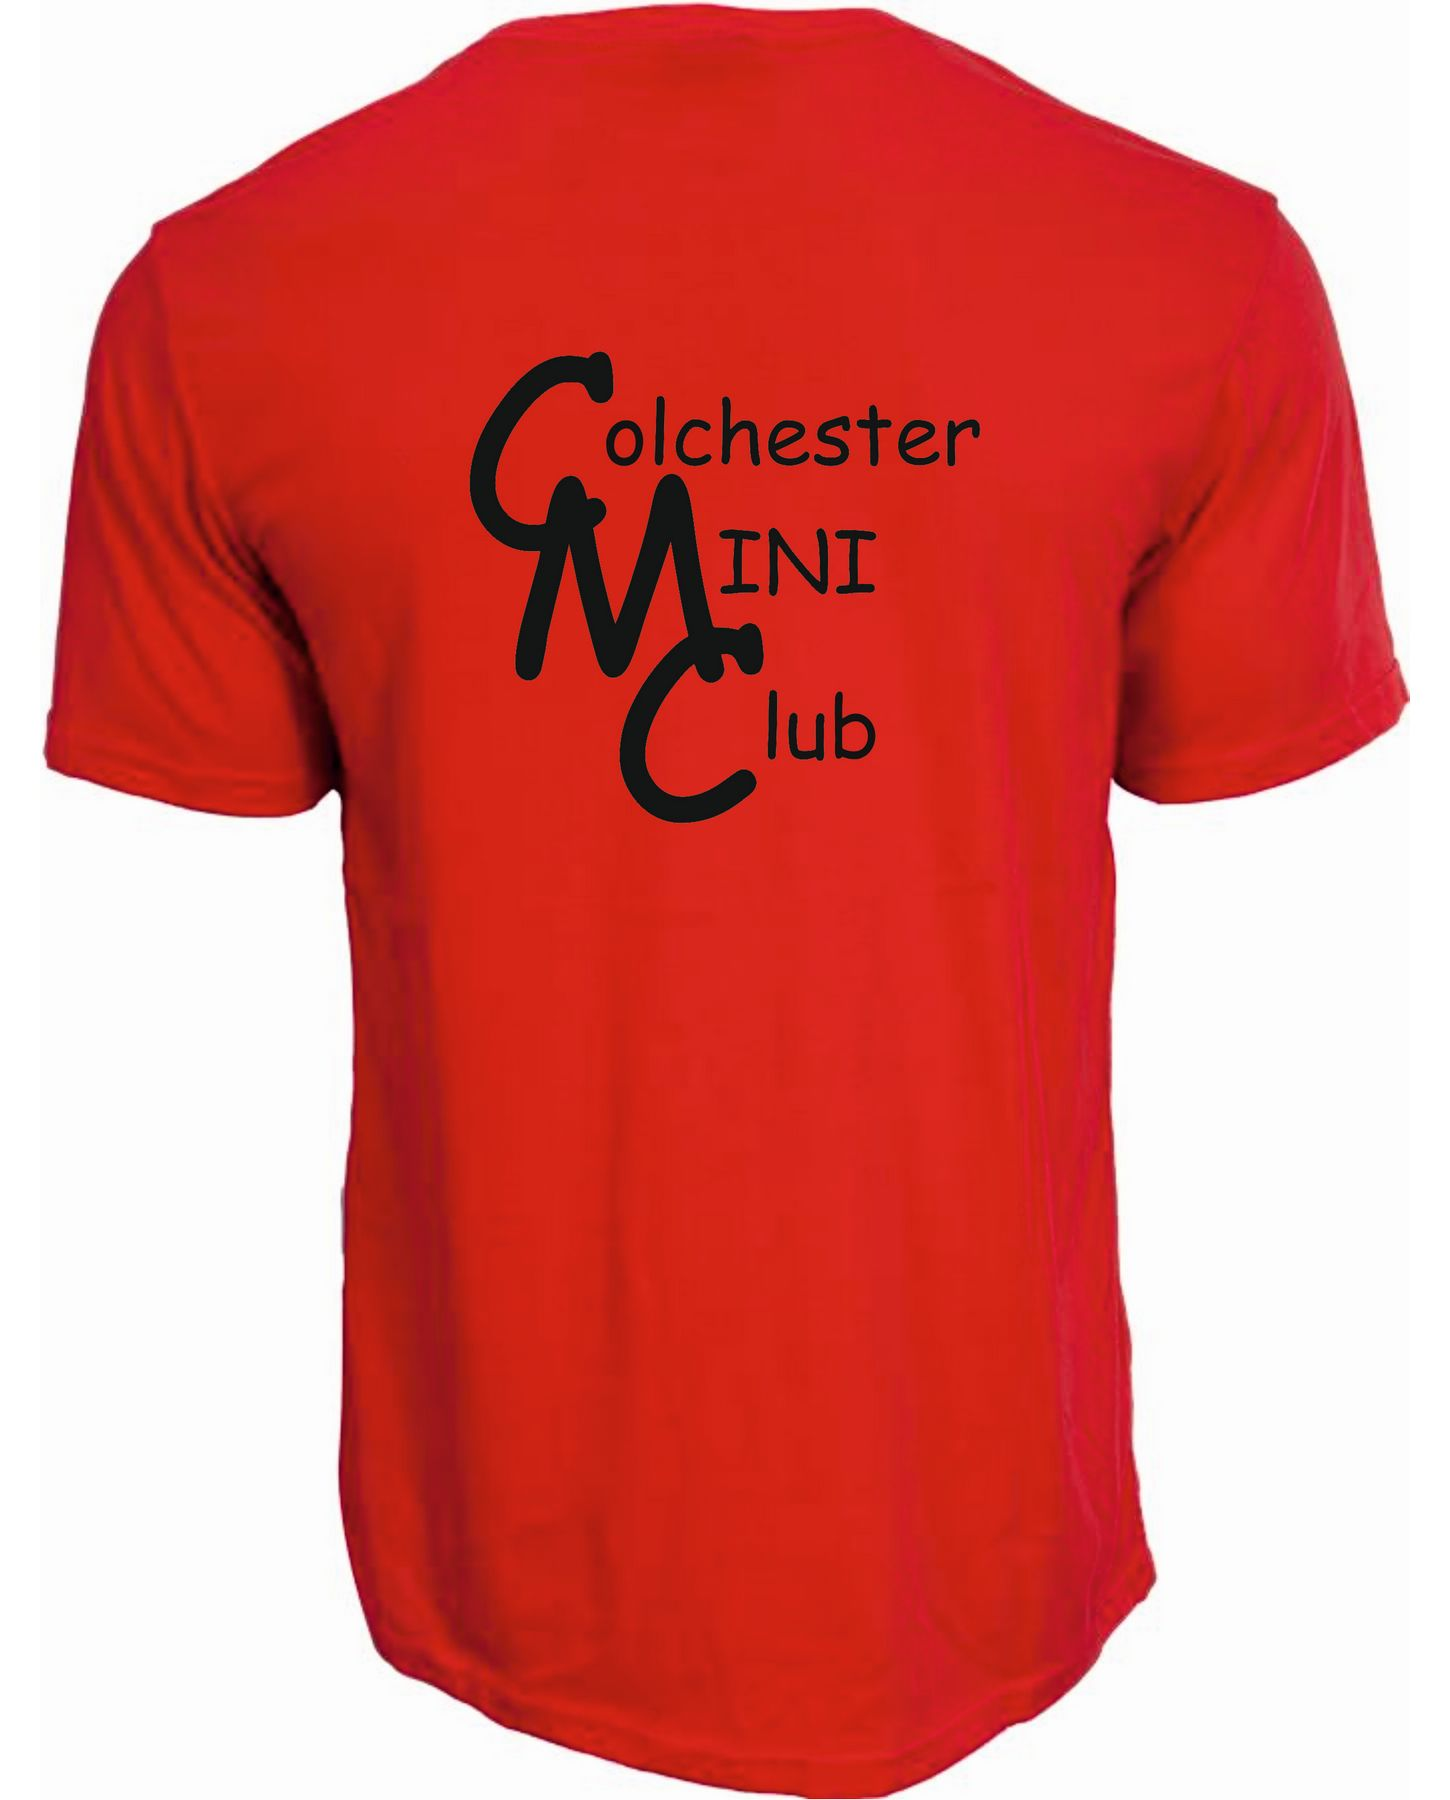 CMC – Classic Tee in Red